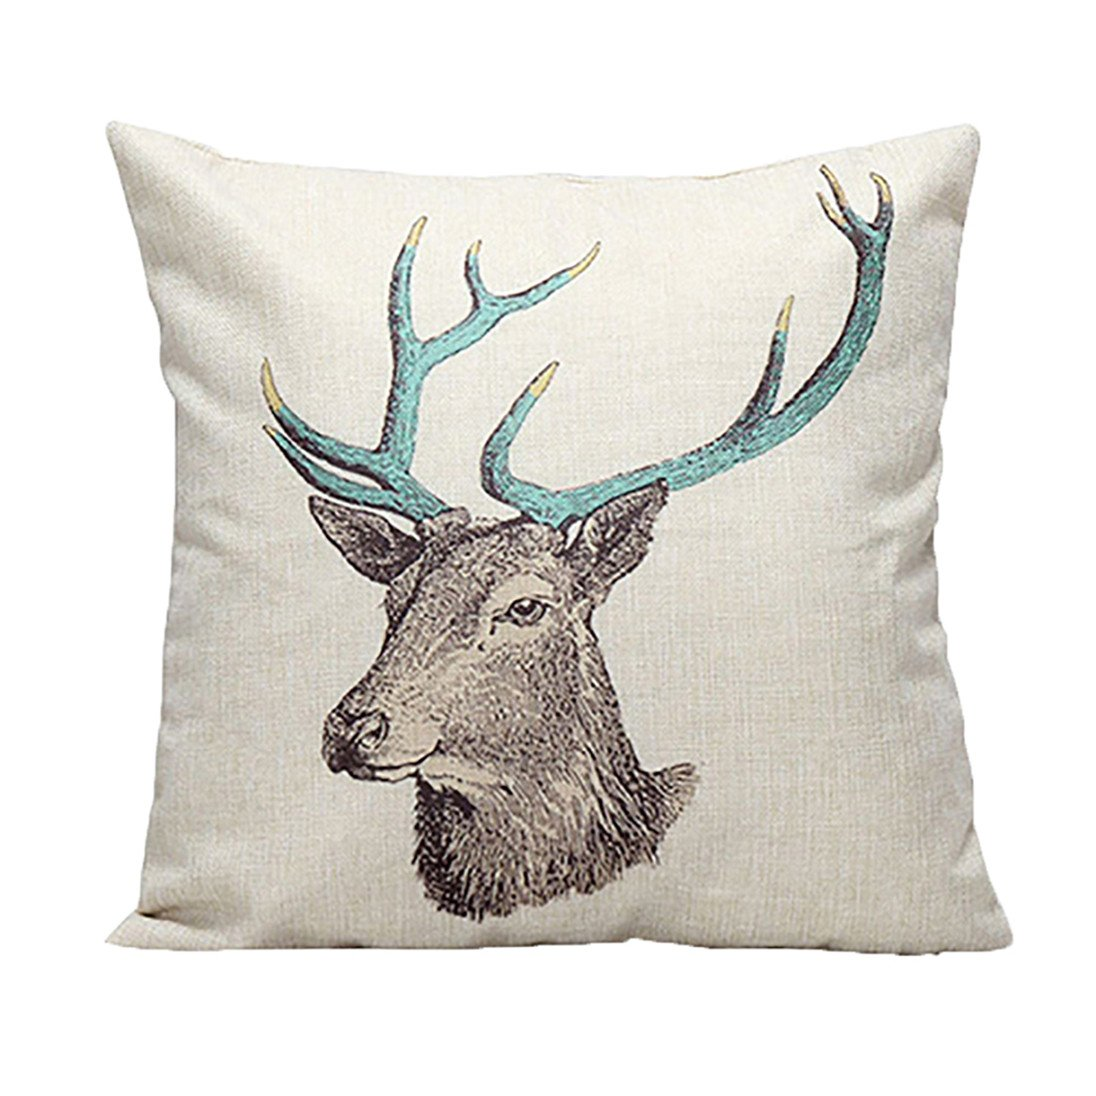 good01 Vintage Stag Tree Deer Print Linen Throw Pillow Case Cushion Cover Decor